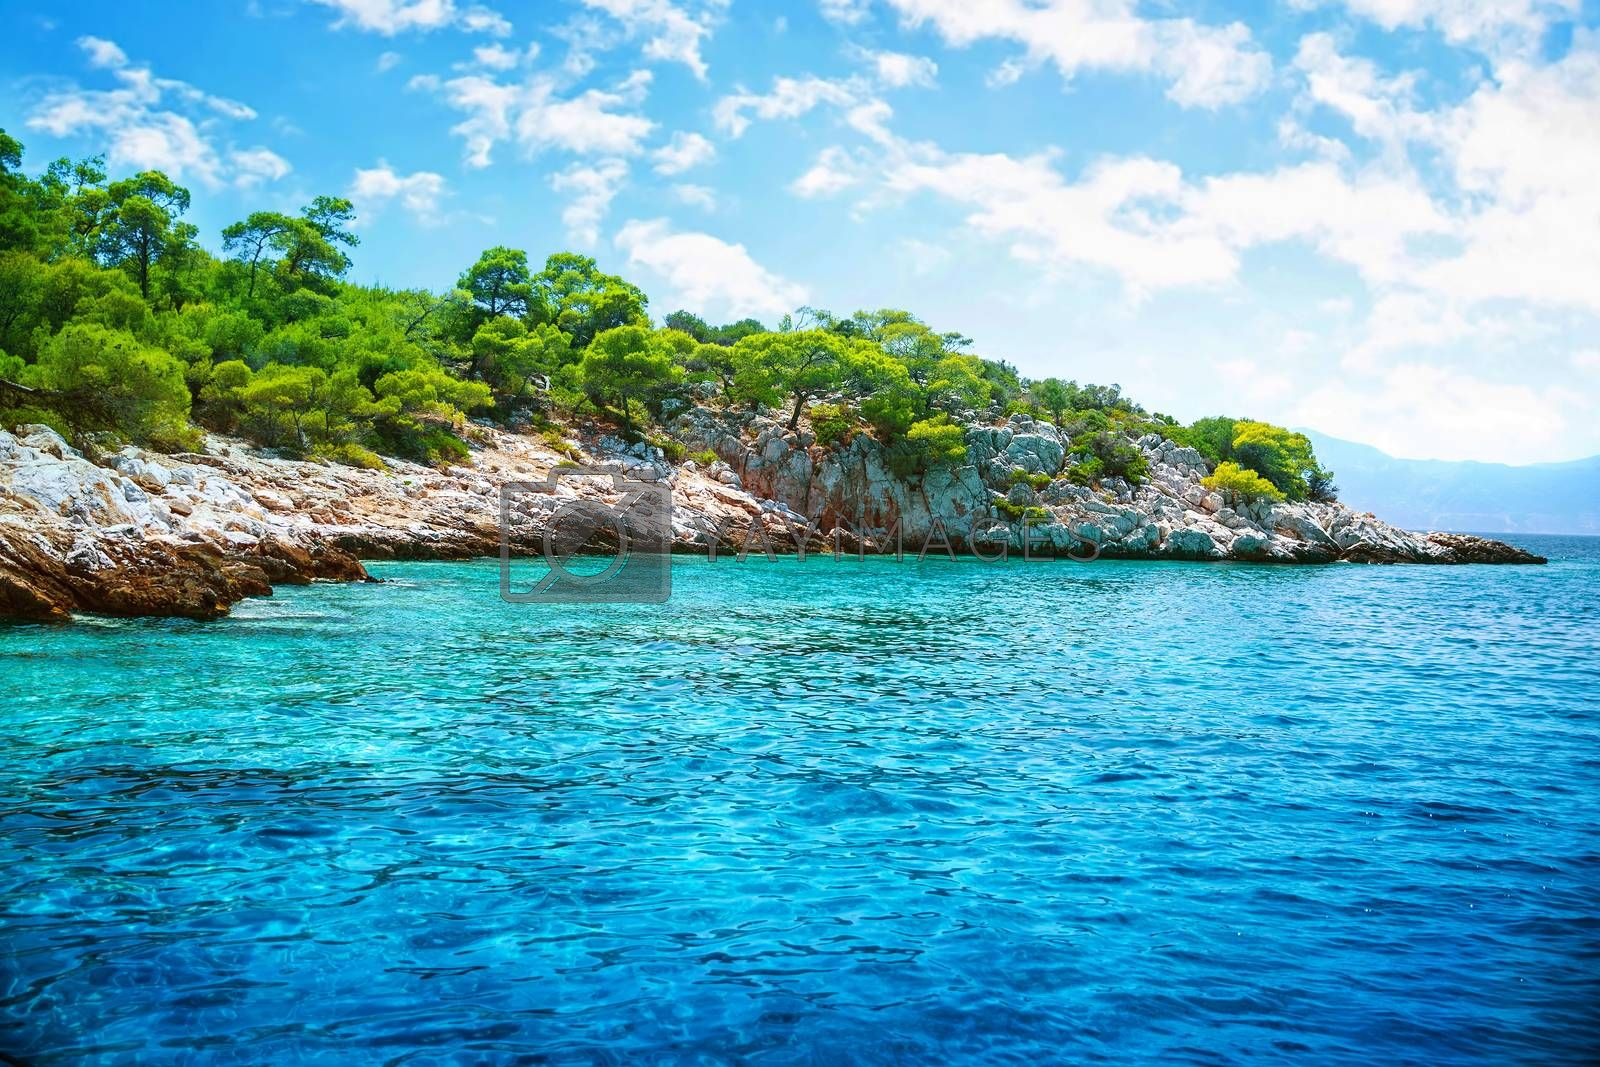 Beautiful landscape, clear blue sea, rocky seashore and fresh green trees on it, touristic place, panoramic scene, summer holidays concept